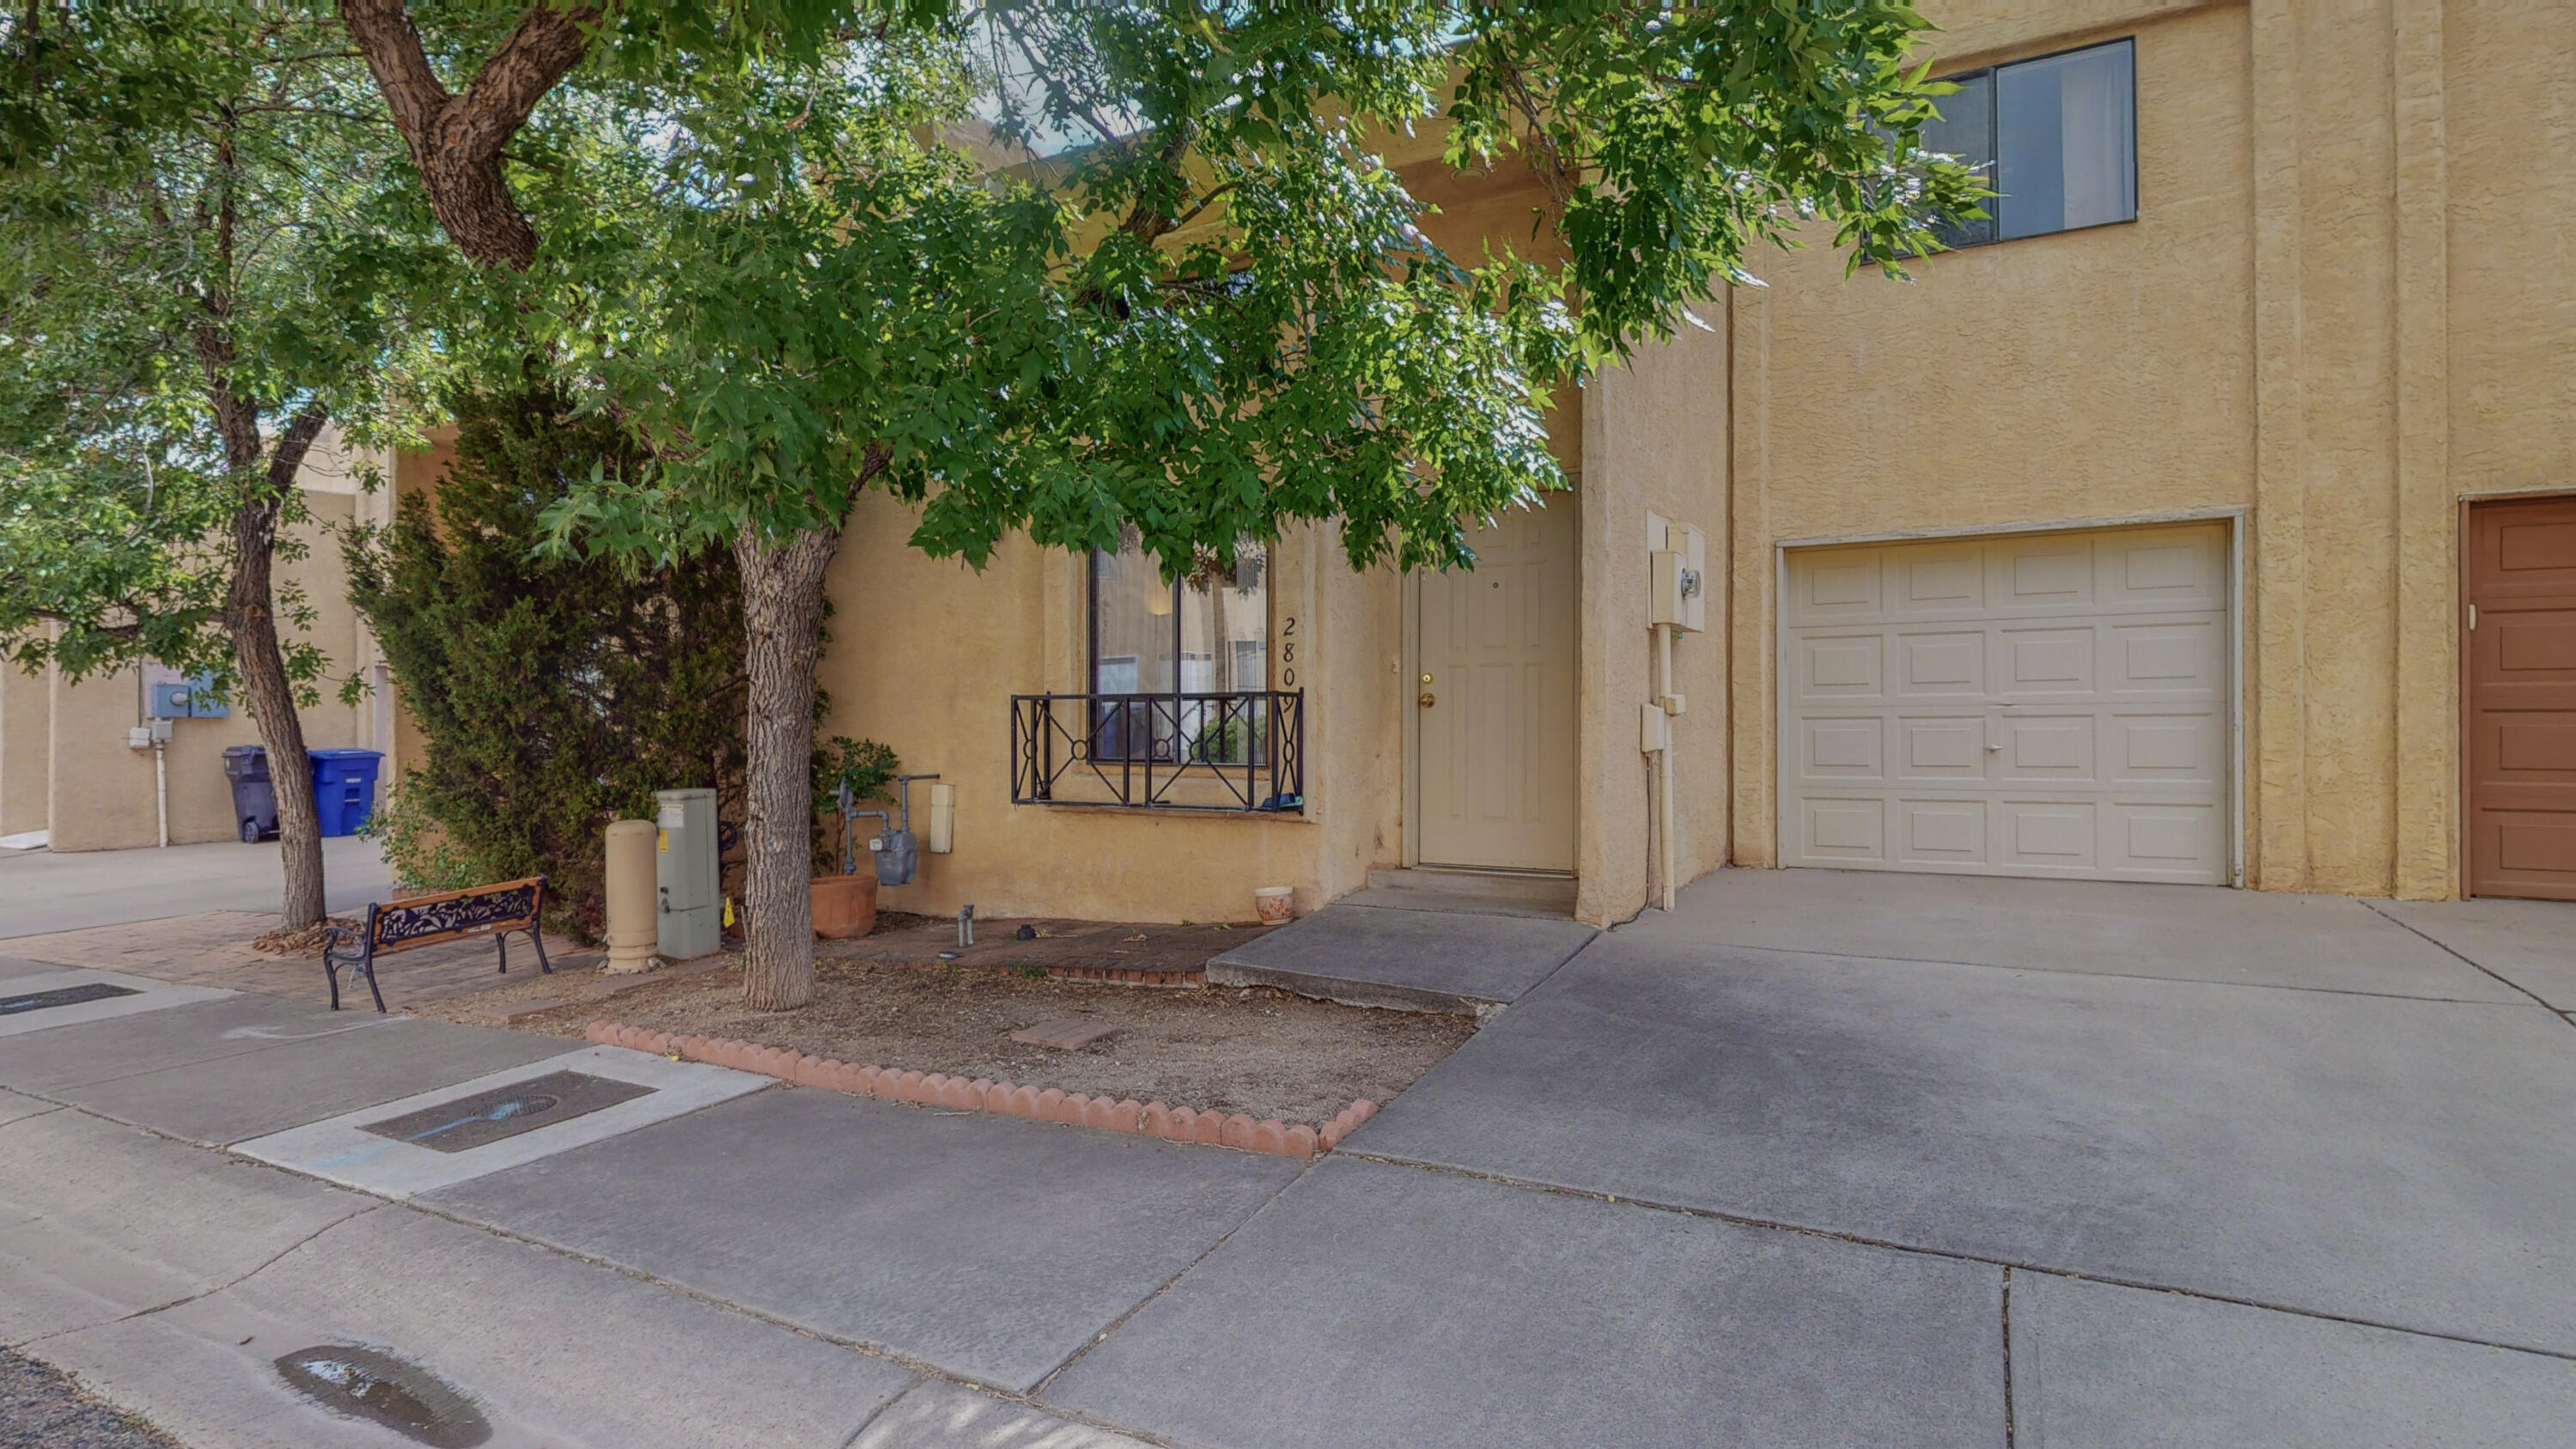 Cute, cozy, and clean townhome is ready for you!  Beautiful Sandia Mountain view from bedroom.  Well-maintained townhome has two master bedrooms and a half bathroom downstairs for guests and for your convenience.  Take care of kitchen tasks with newer dishwasher and stove/oven. Water heater is also new.  Enjoy west-facing patio on summer evenings.  Conveniently located to shopping, dining, walking, and biking paths.  Access to freeway is easy.  Come see it today; tomorrow may be too late!